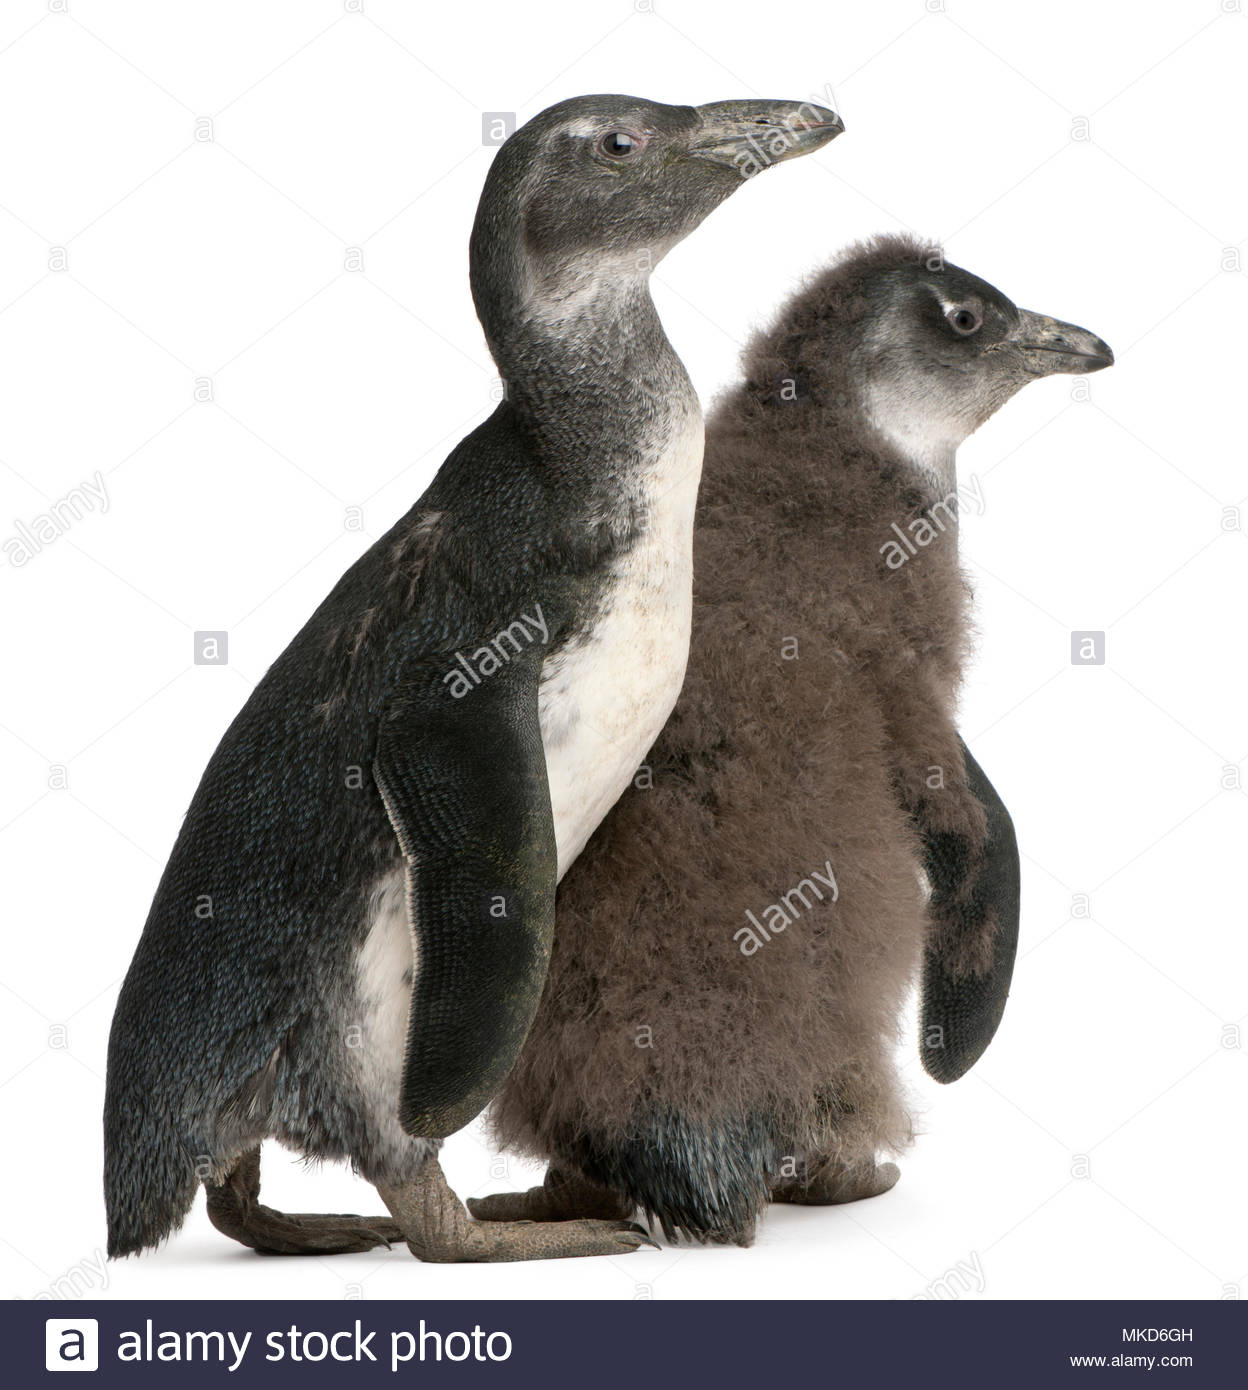 Young African Penguin, (Spheniscus demersus), 3 and 2 months old, in front of white background Mulhouse Zoological and Botanical Park, France - Stock Image